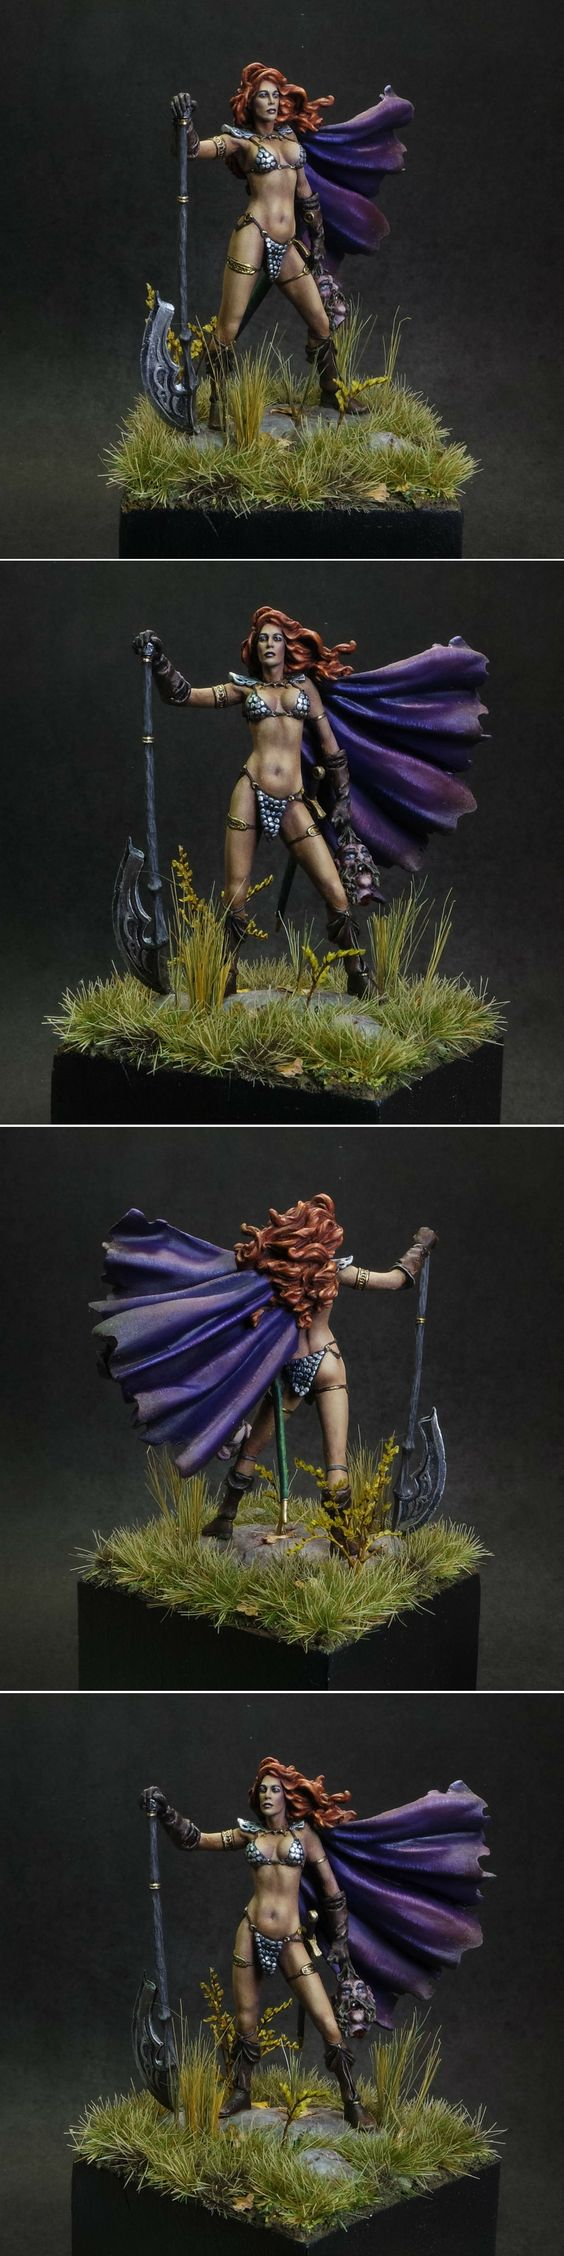 Nocturna Huntress - Gold in Fantasy Large at Capital Palette 2015